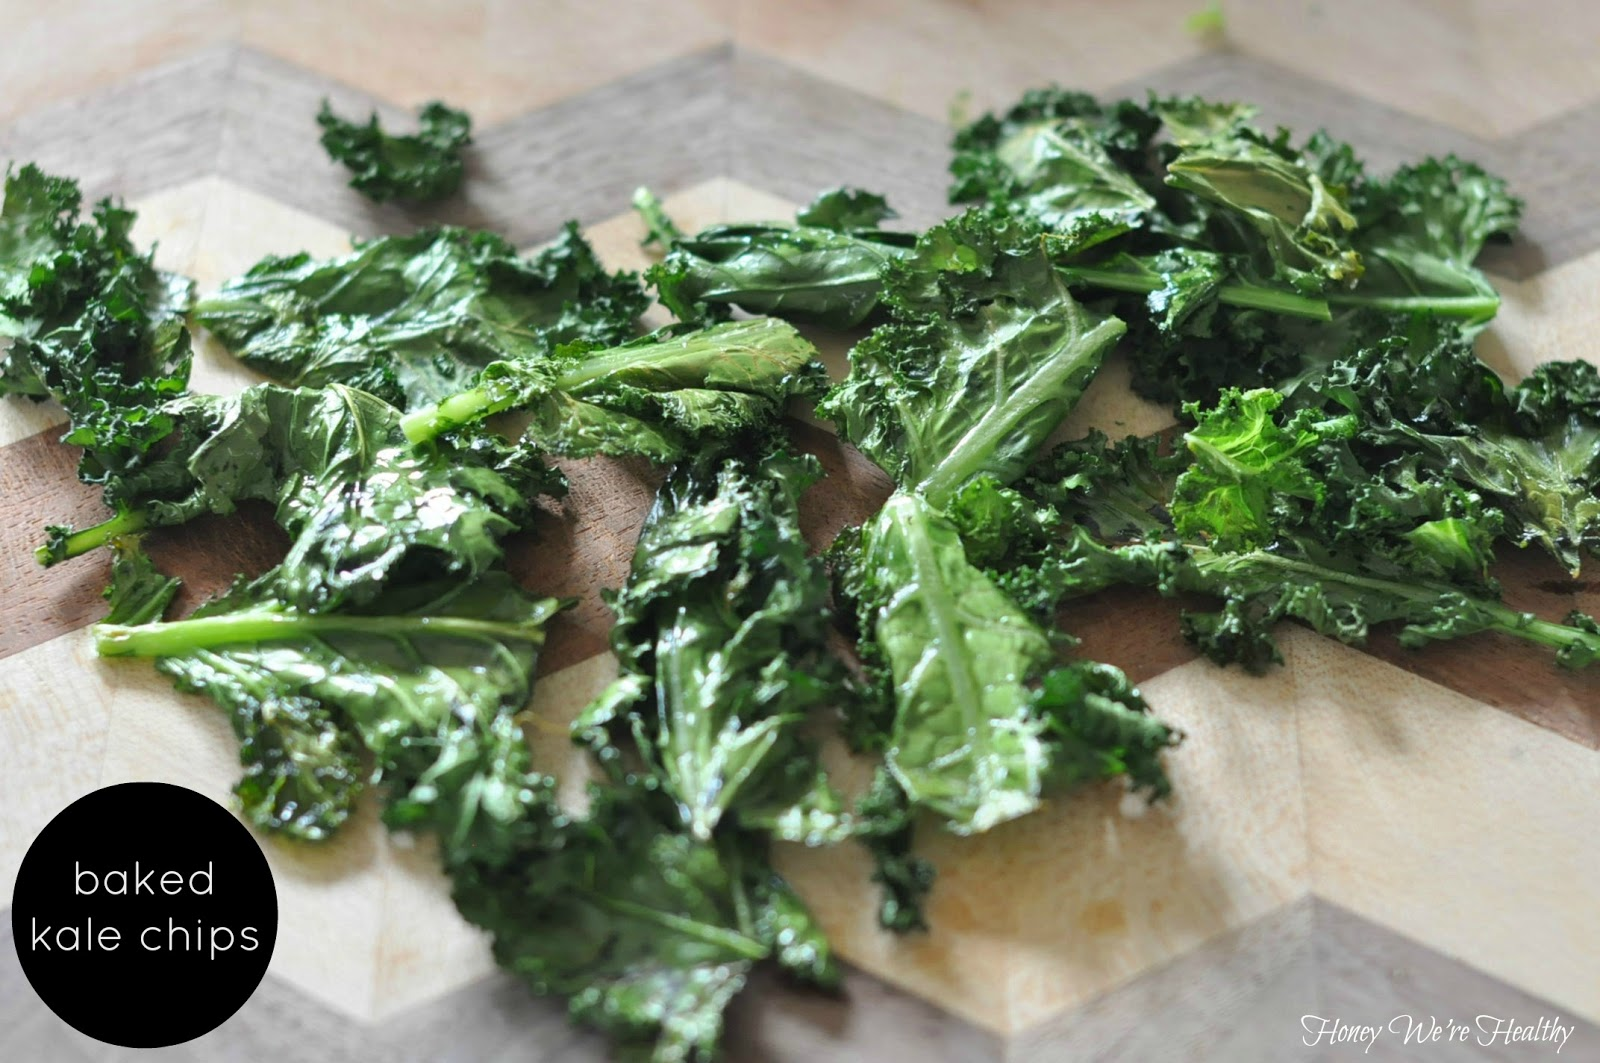 Honey We're Healthy: Baked Kale Chips